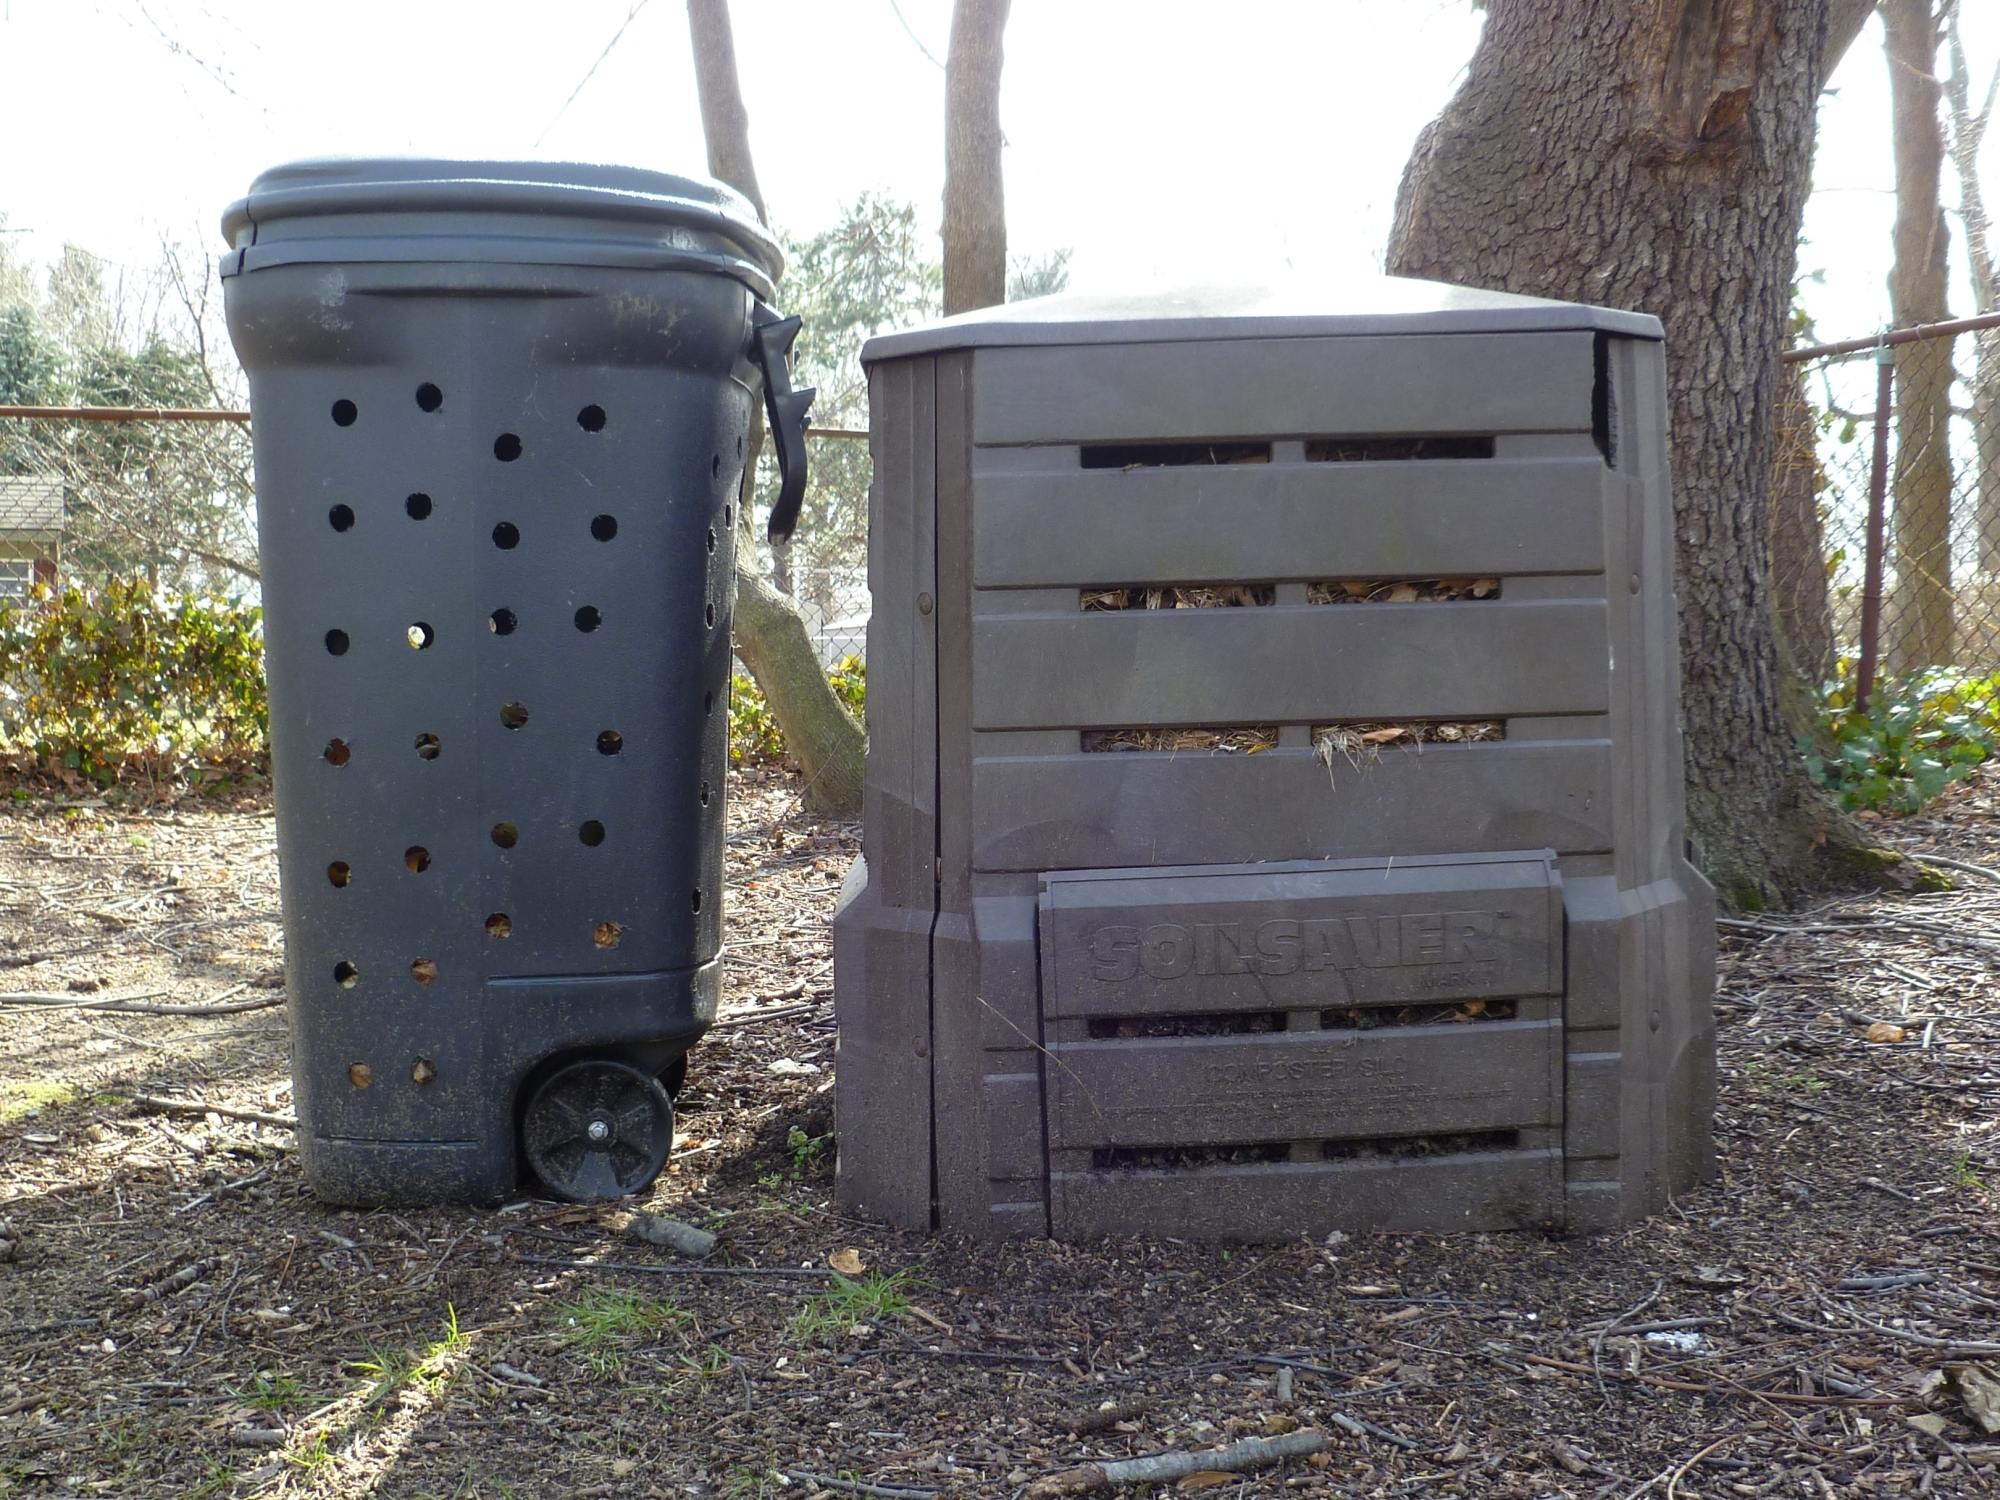 New Project: Trash Can Composter